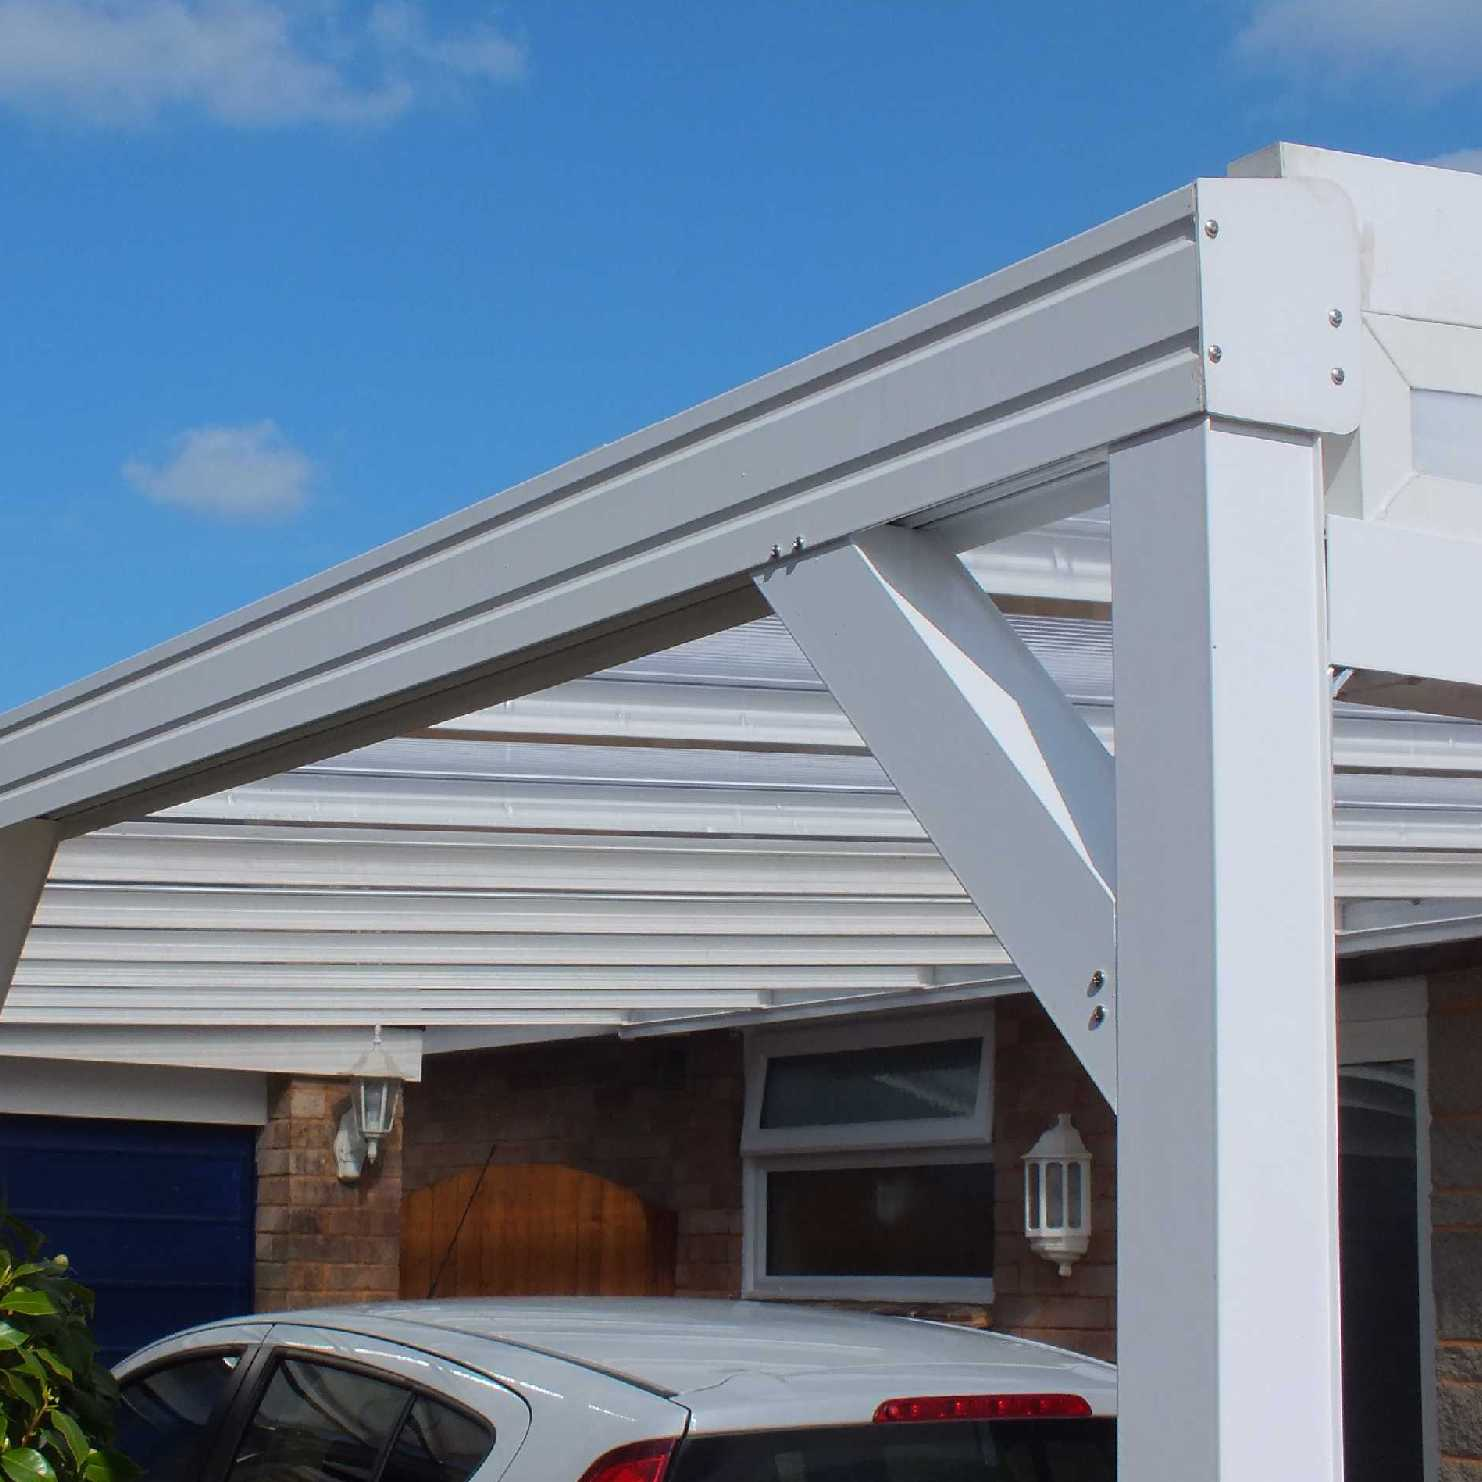 Buy Omega Smart White Lean-To Canopy with 16mm Polycarbonate Glazing - 9.5m (W) x 1.5m (P), (5) Supporting Posts online today